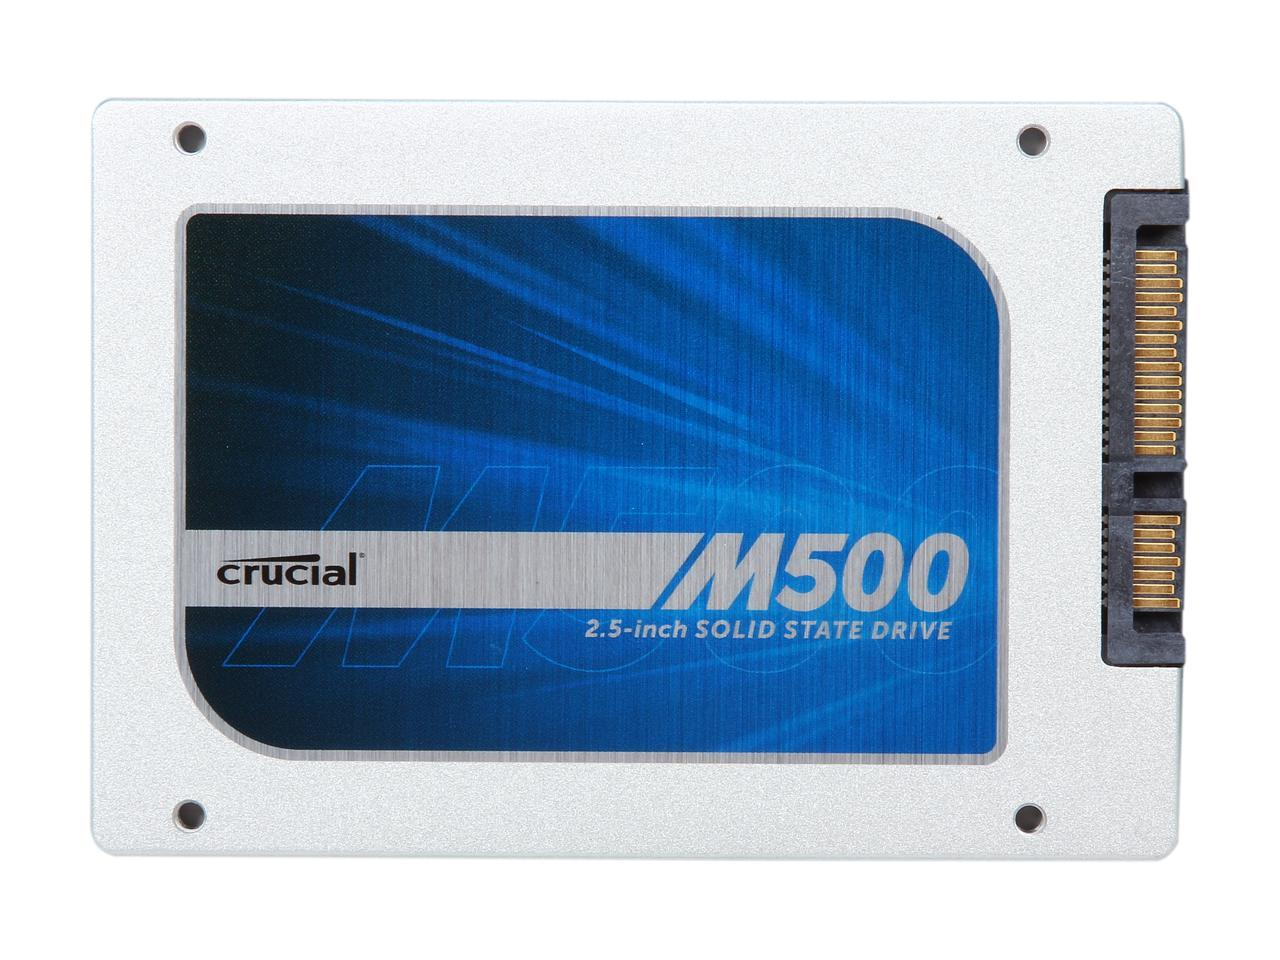 PC Parts Unlimited CT240M500SSD1 Crucial M500 Series 240GB MLC SATA 6Gbps 2.5-inch Internal Solid State Drive